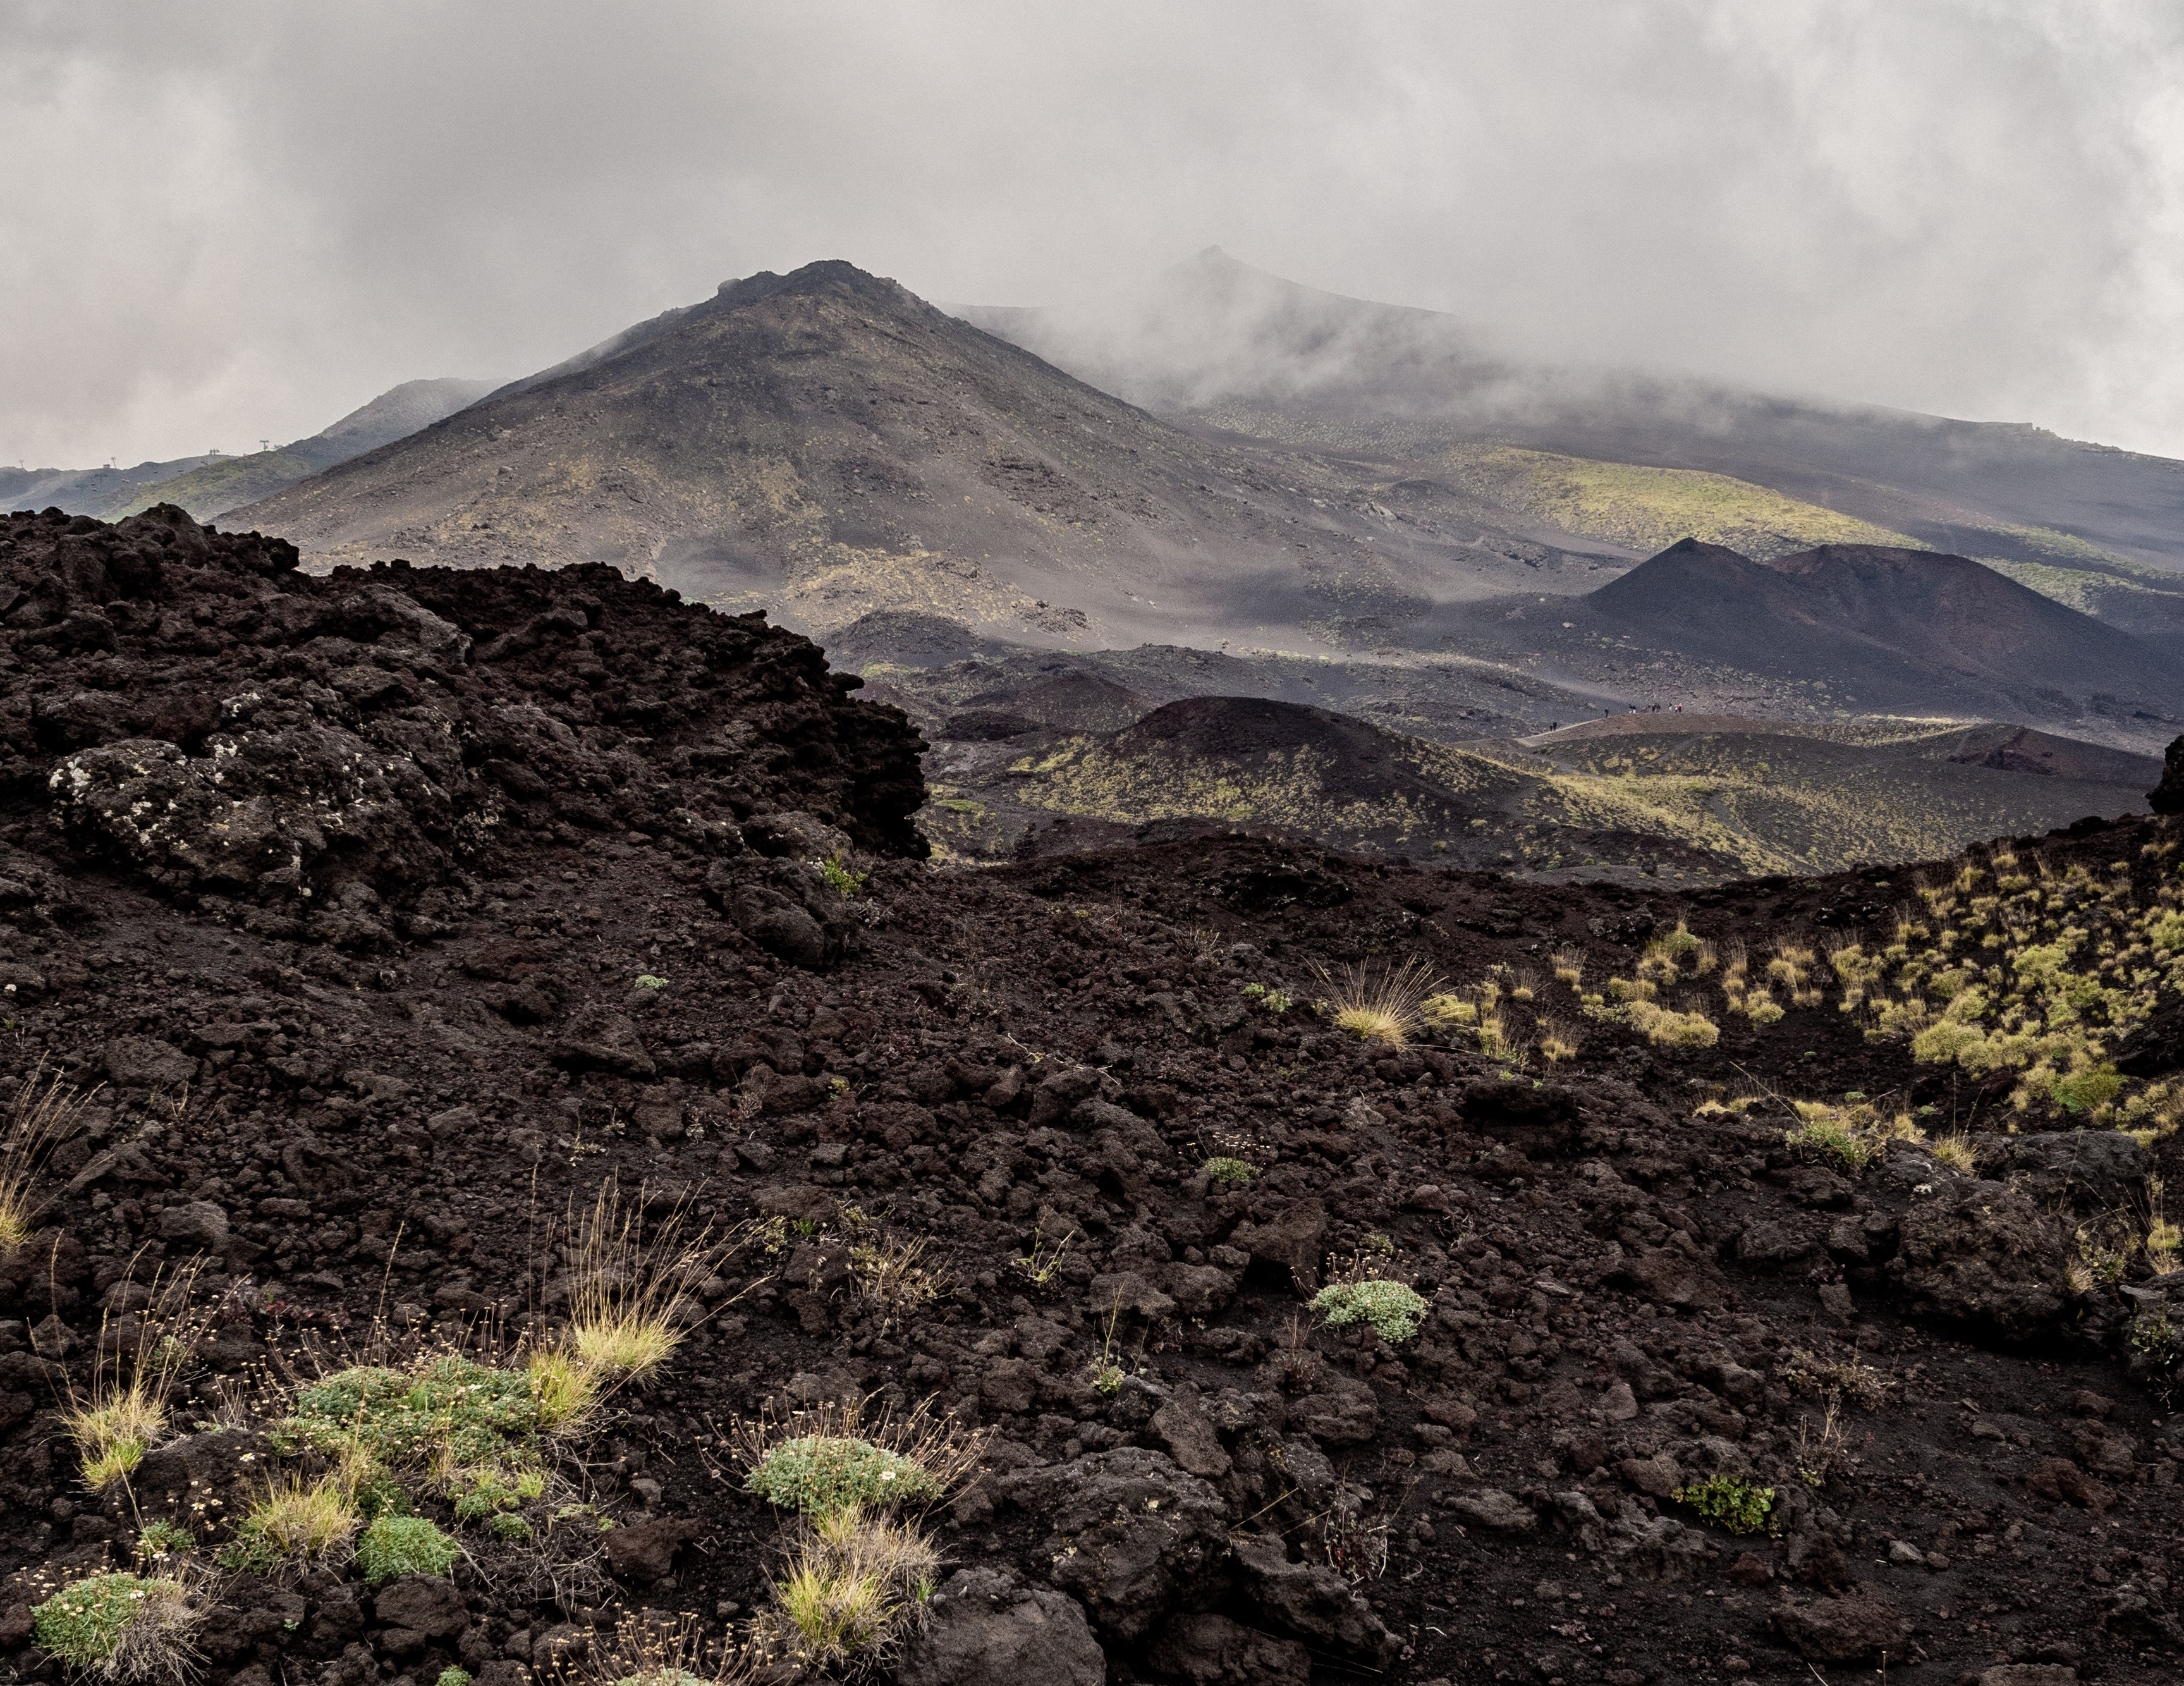 Mount Etna, a volcano in the province of Catania, Italy